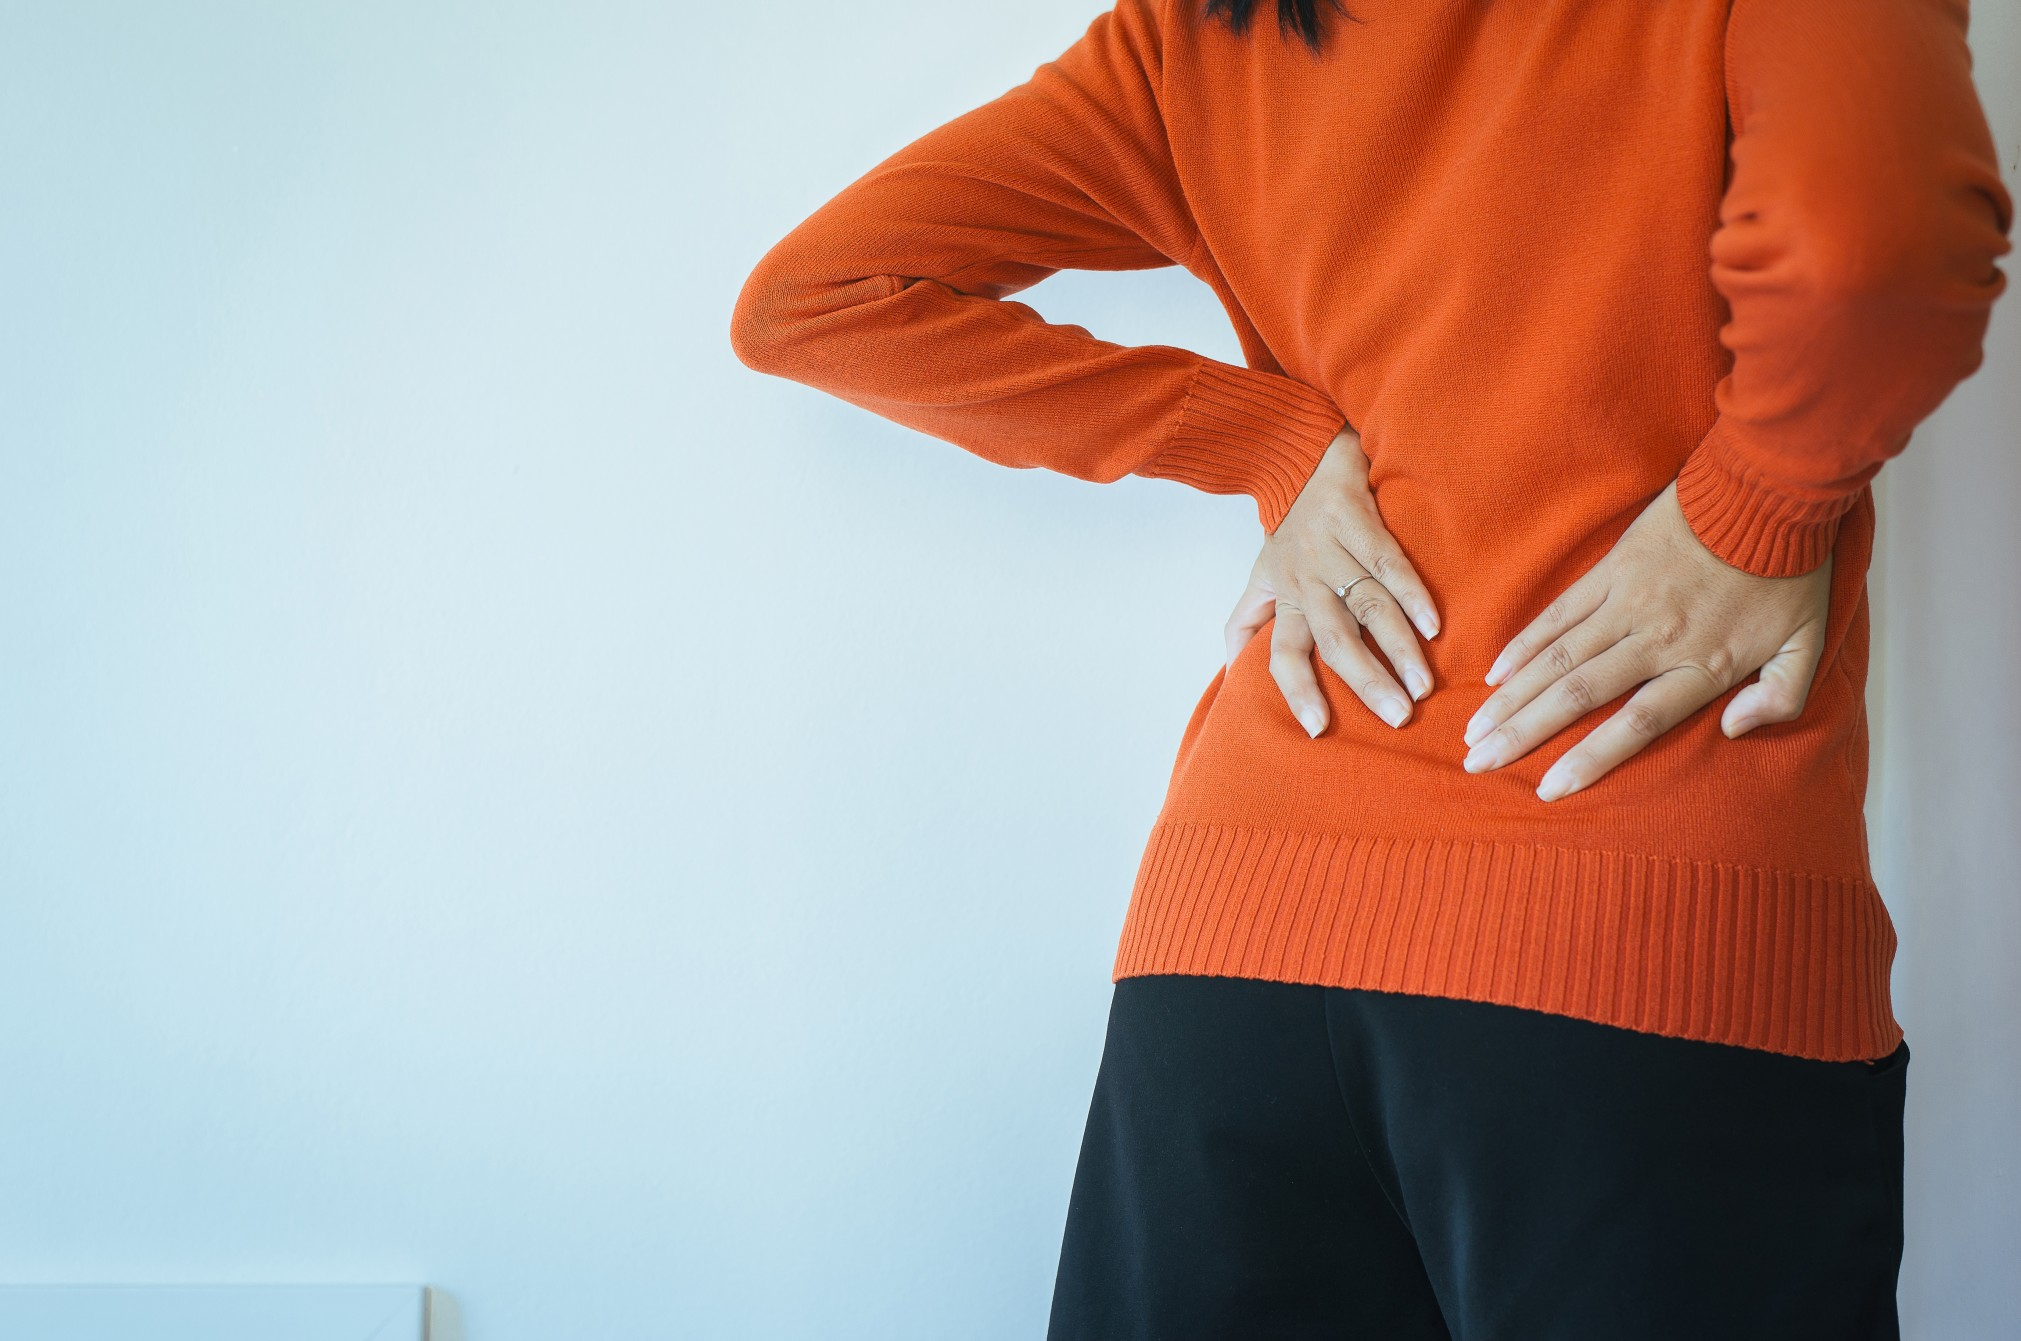 Sciatica: What it is and Tips for Care